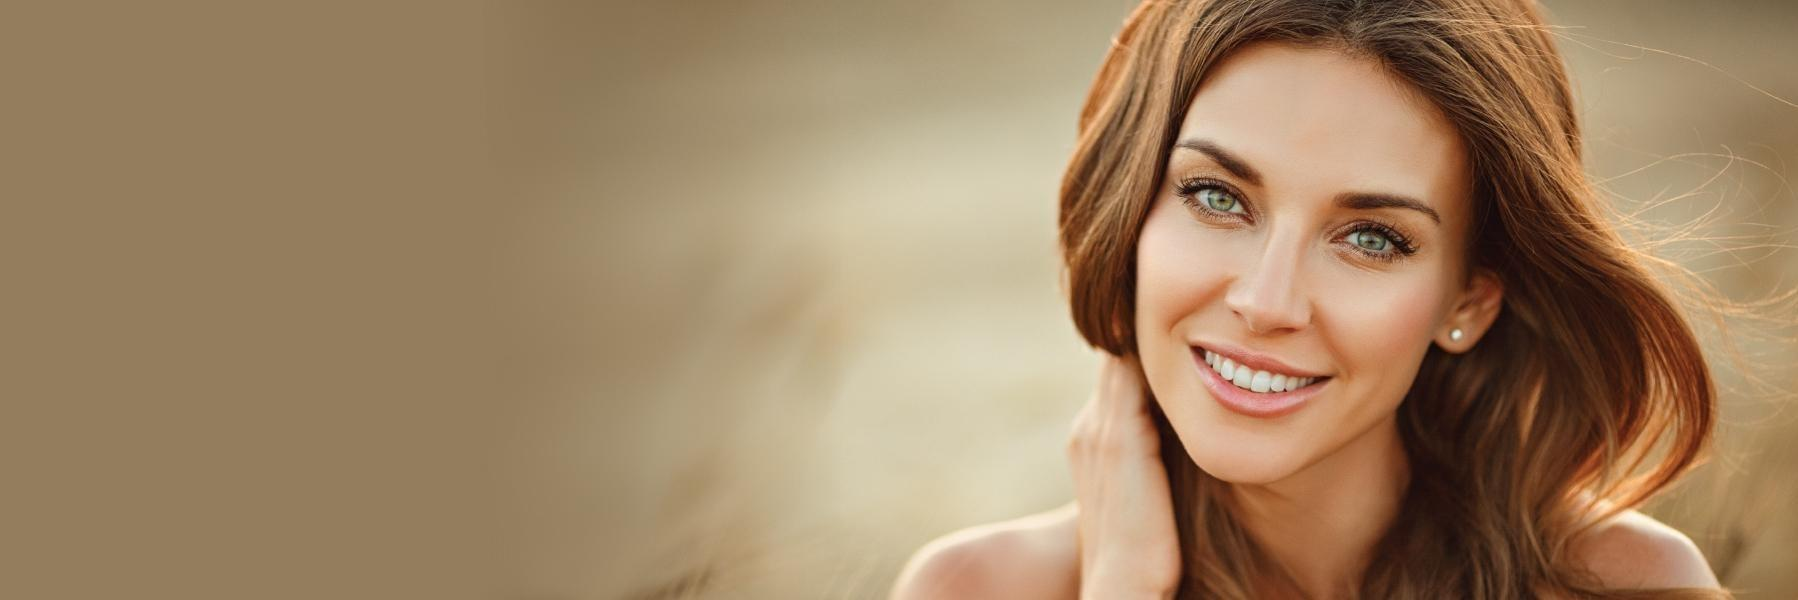 Woman smiling | Cosmetic Dentist in Annapolis MD